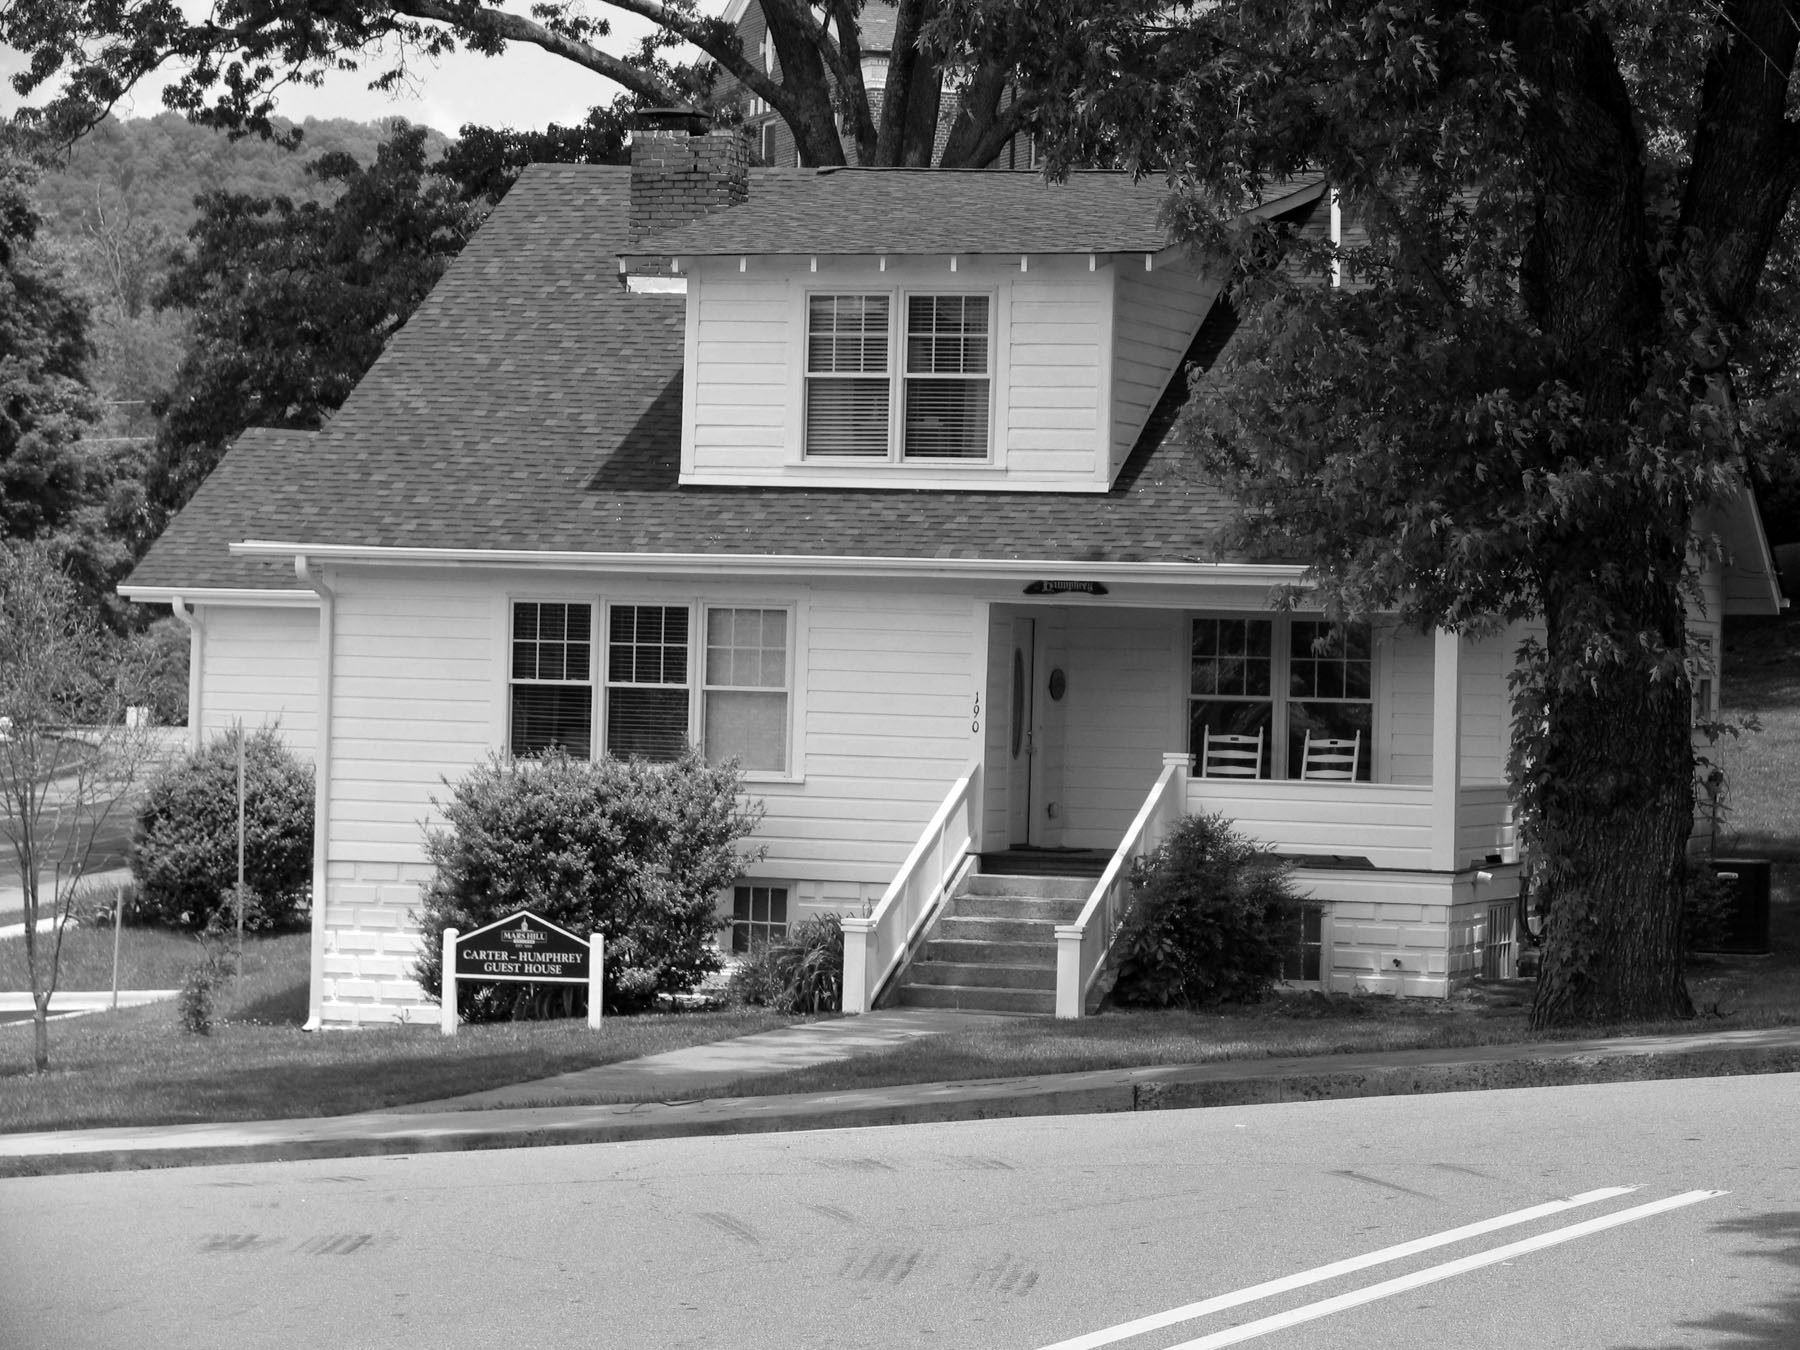 The Carter-Humphrey Guest House, built in 1925.